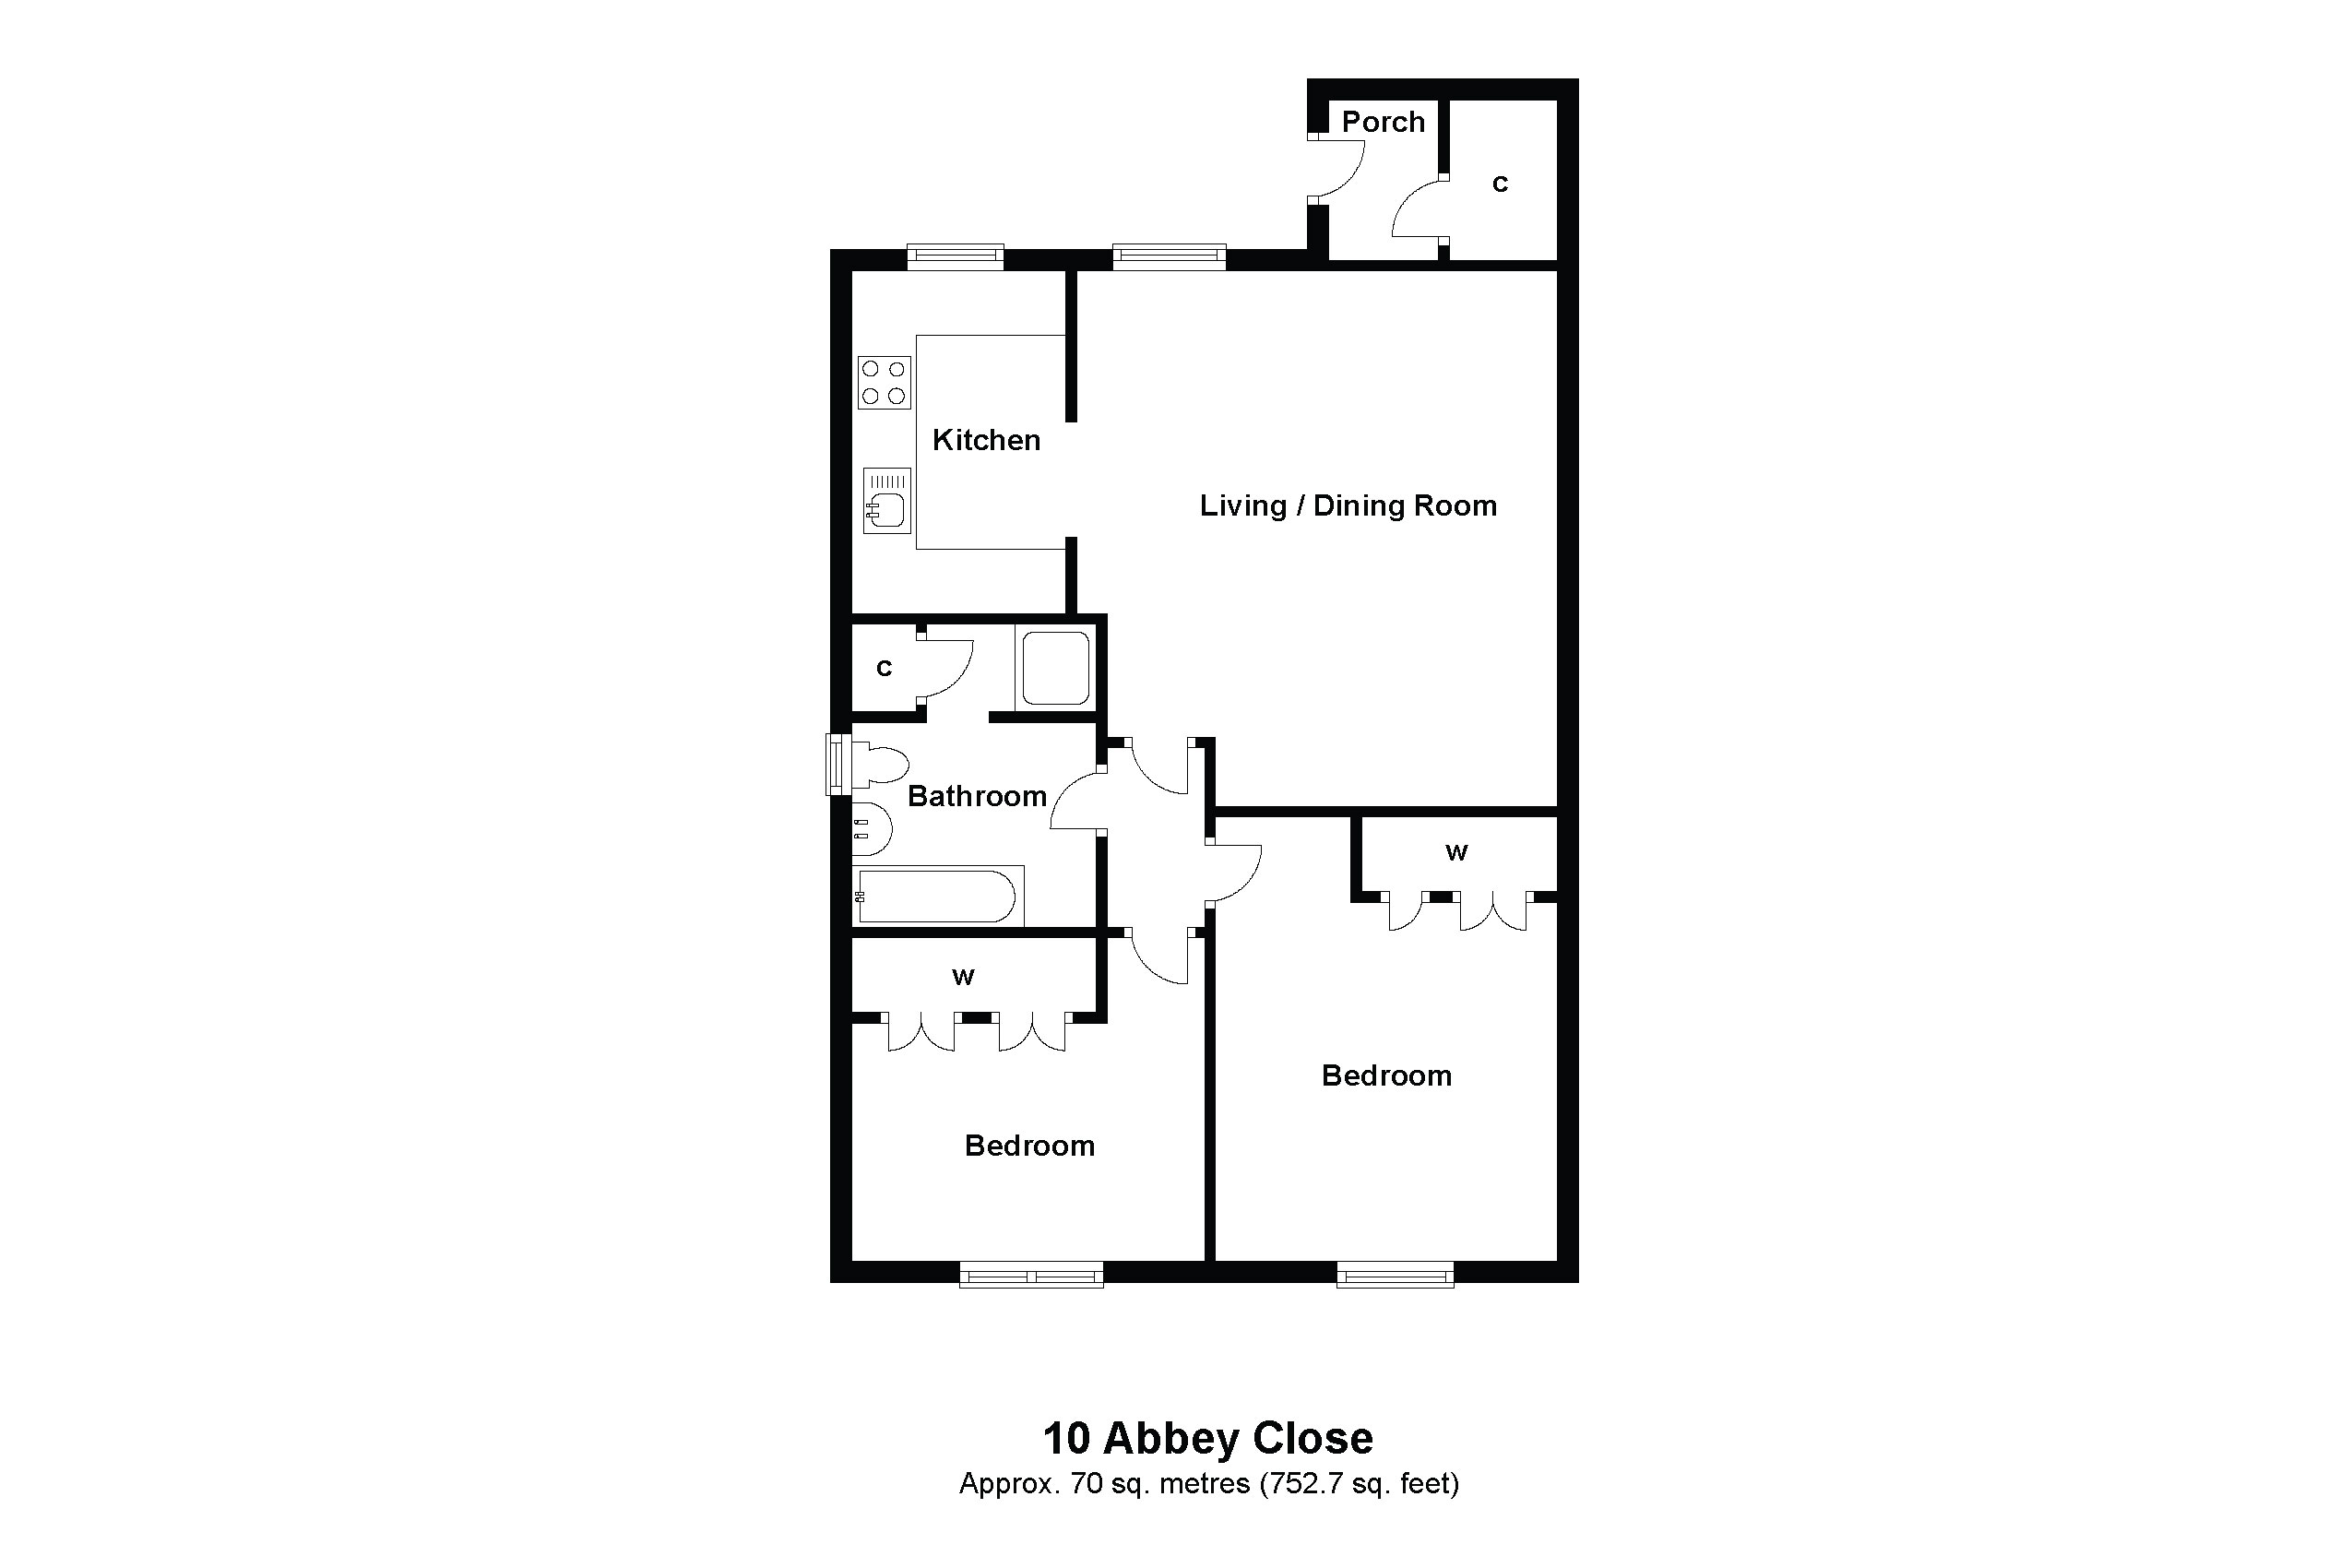 10 Abbey Close Floorplan